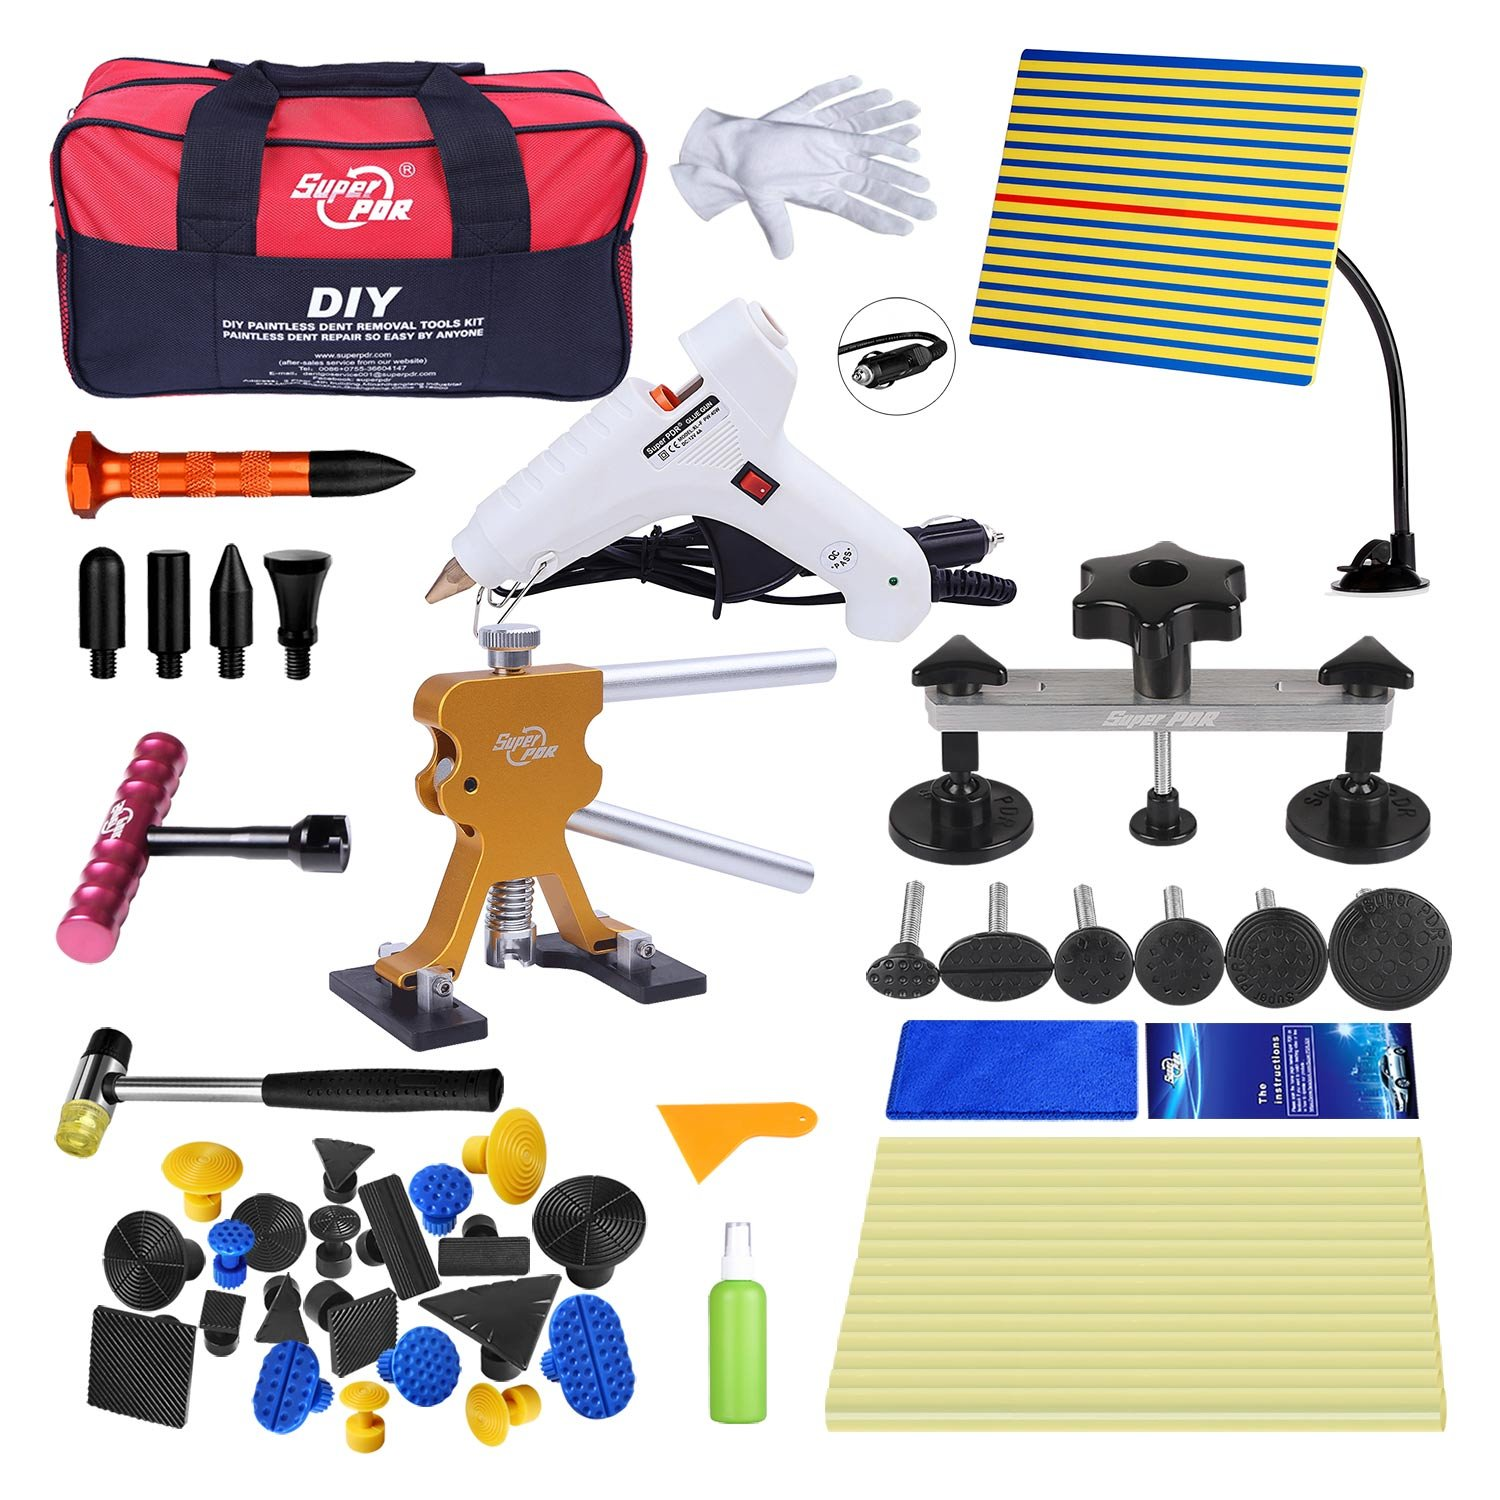 Super PDR 45 pcs PDR Tool Set Automobile Car Body Paintless Dent Repair Remover Tools Kit Hail Damage Repair Tools Dent Lifter Bridge Puller Glue Gun with Slide Hammer by Super PDR